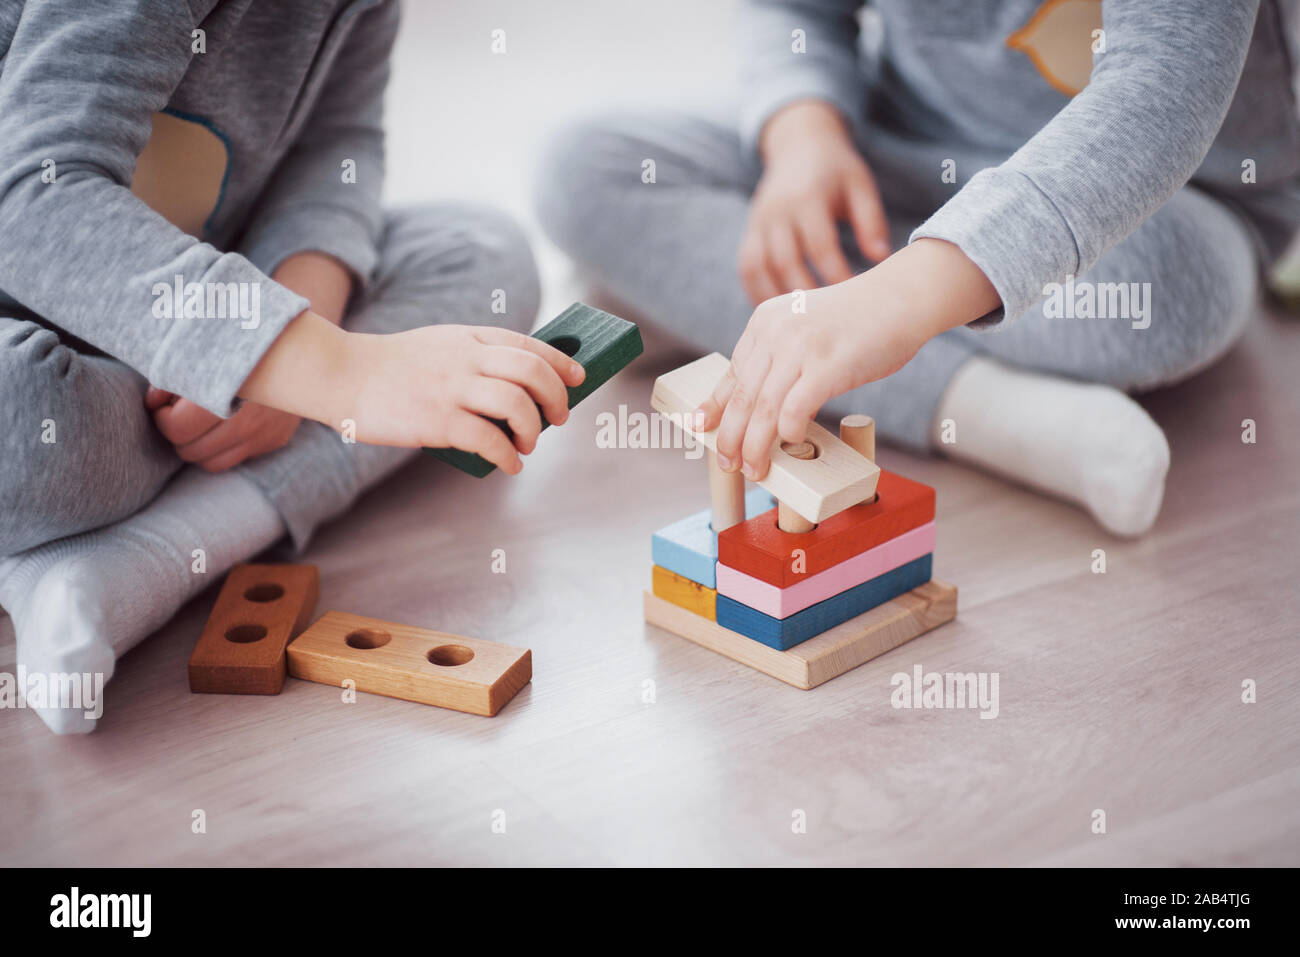 Children play with a toy designer on the floor of the children's room. Two kids playing with colorful blocks. Kindergarten educational games Stock Photo